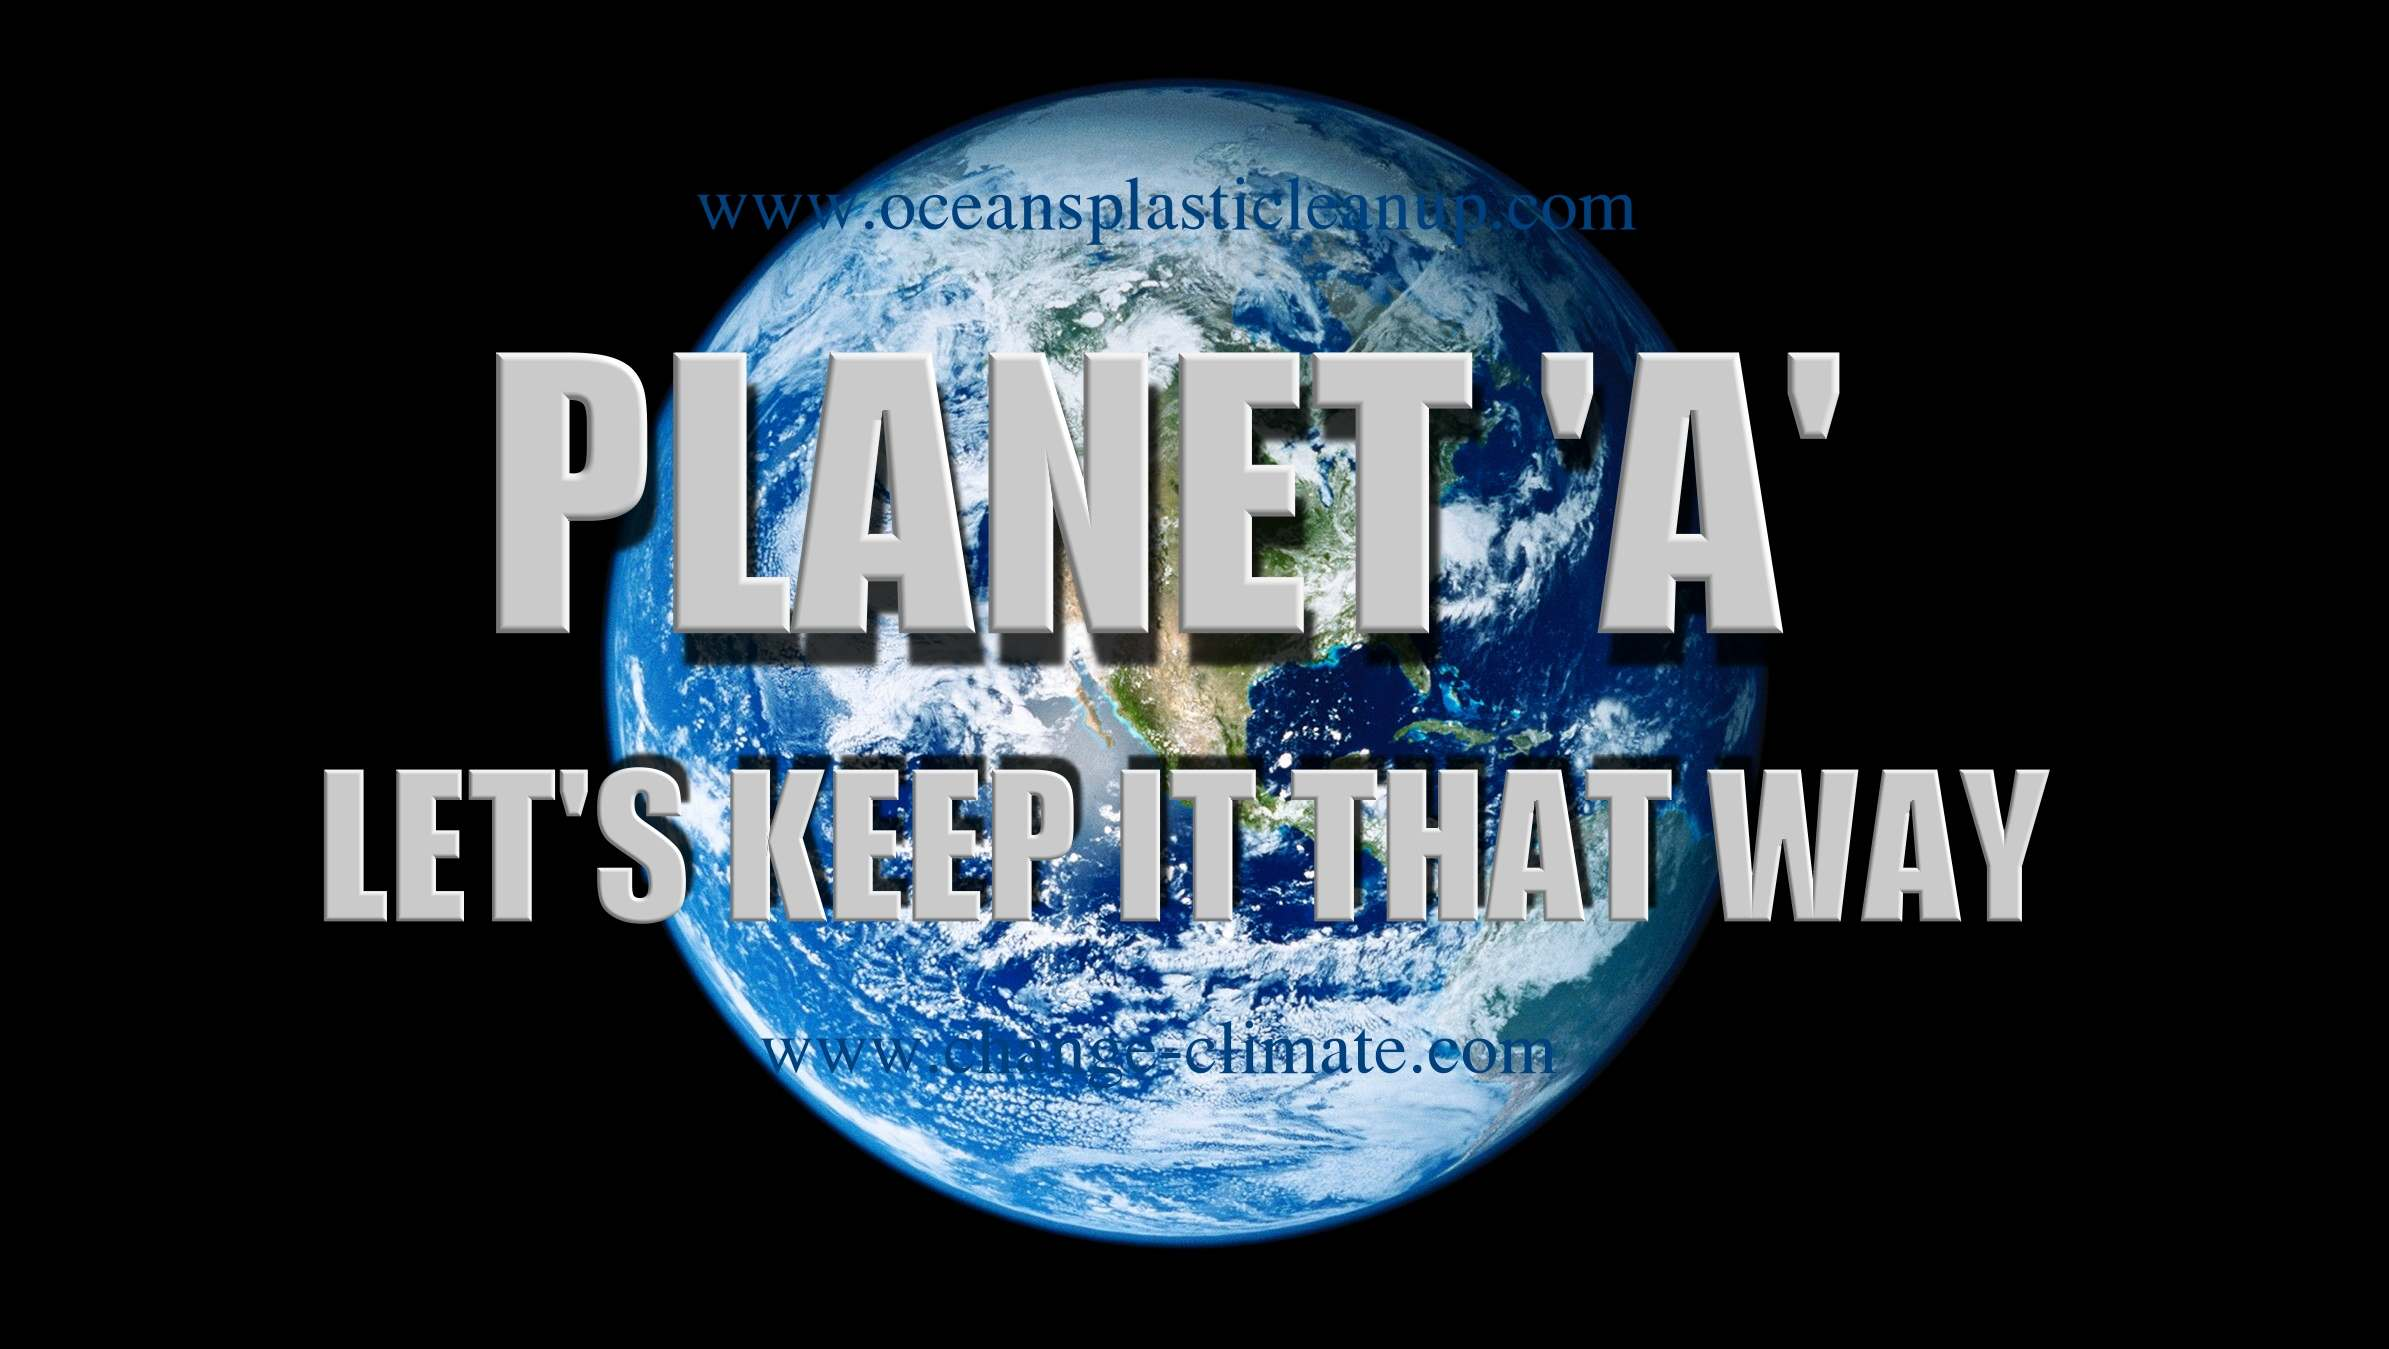 Planet A is being threatened by G20 politics that is not working